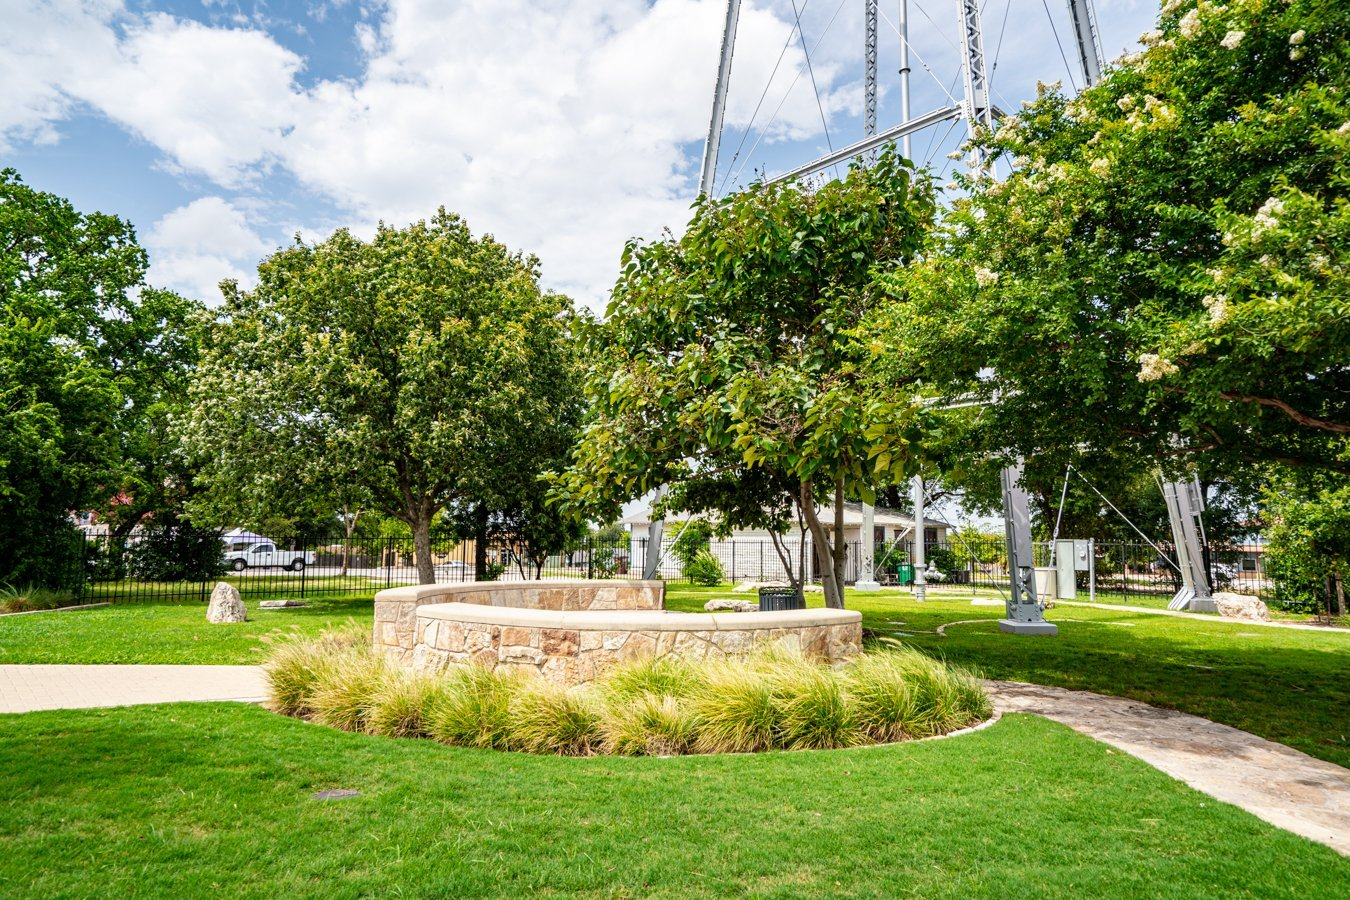 Koughan Memorial Water Tower Park in Round Rock Texas